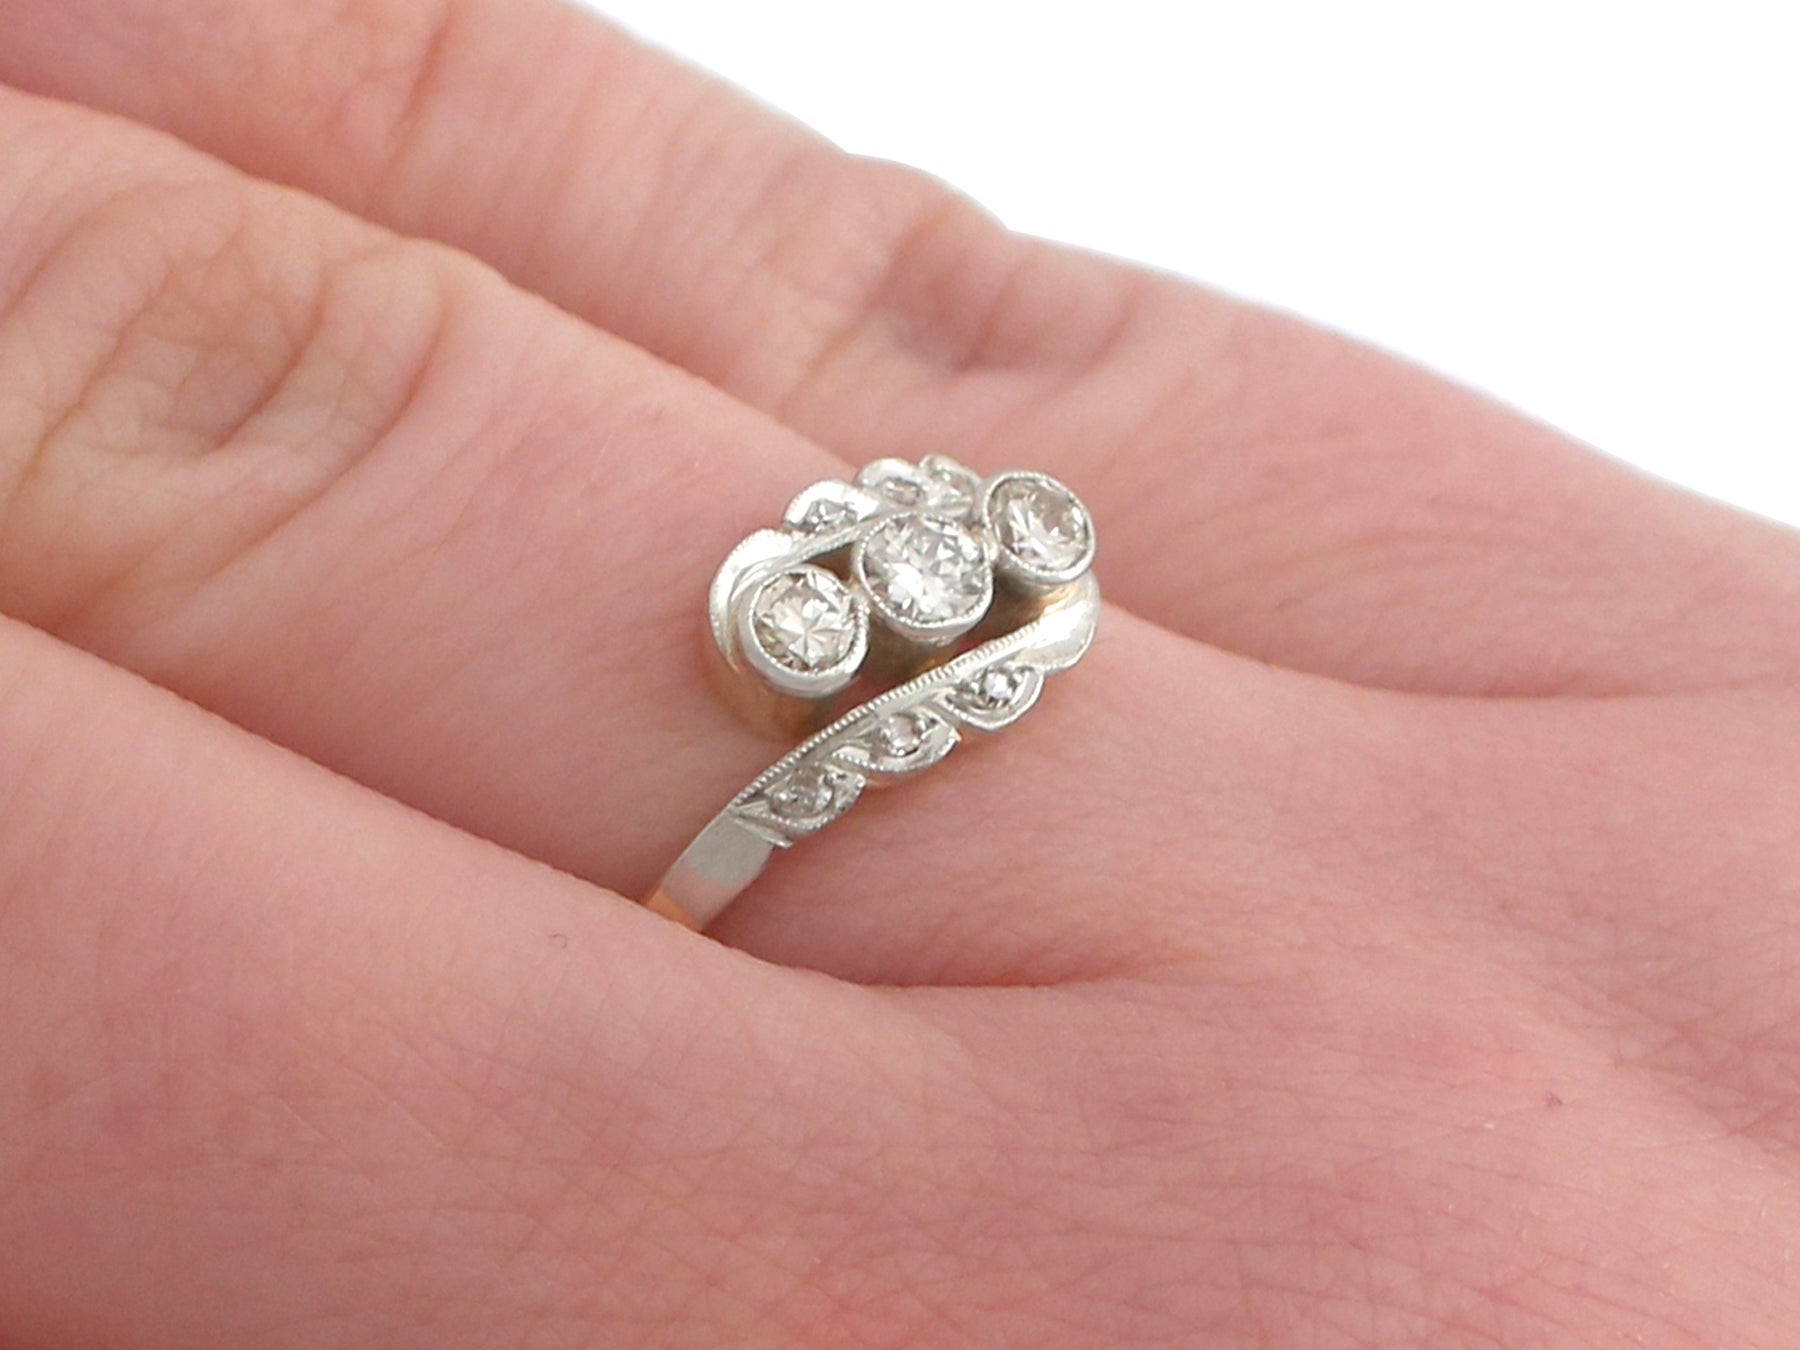 1930s Diamond and 14 Karat Yellow Gold Dress Ring For Sale at 1stdibs